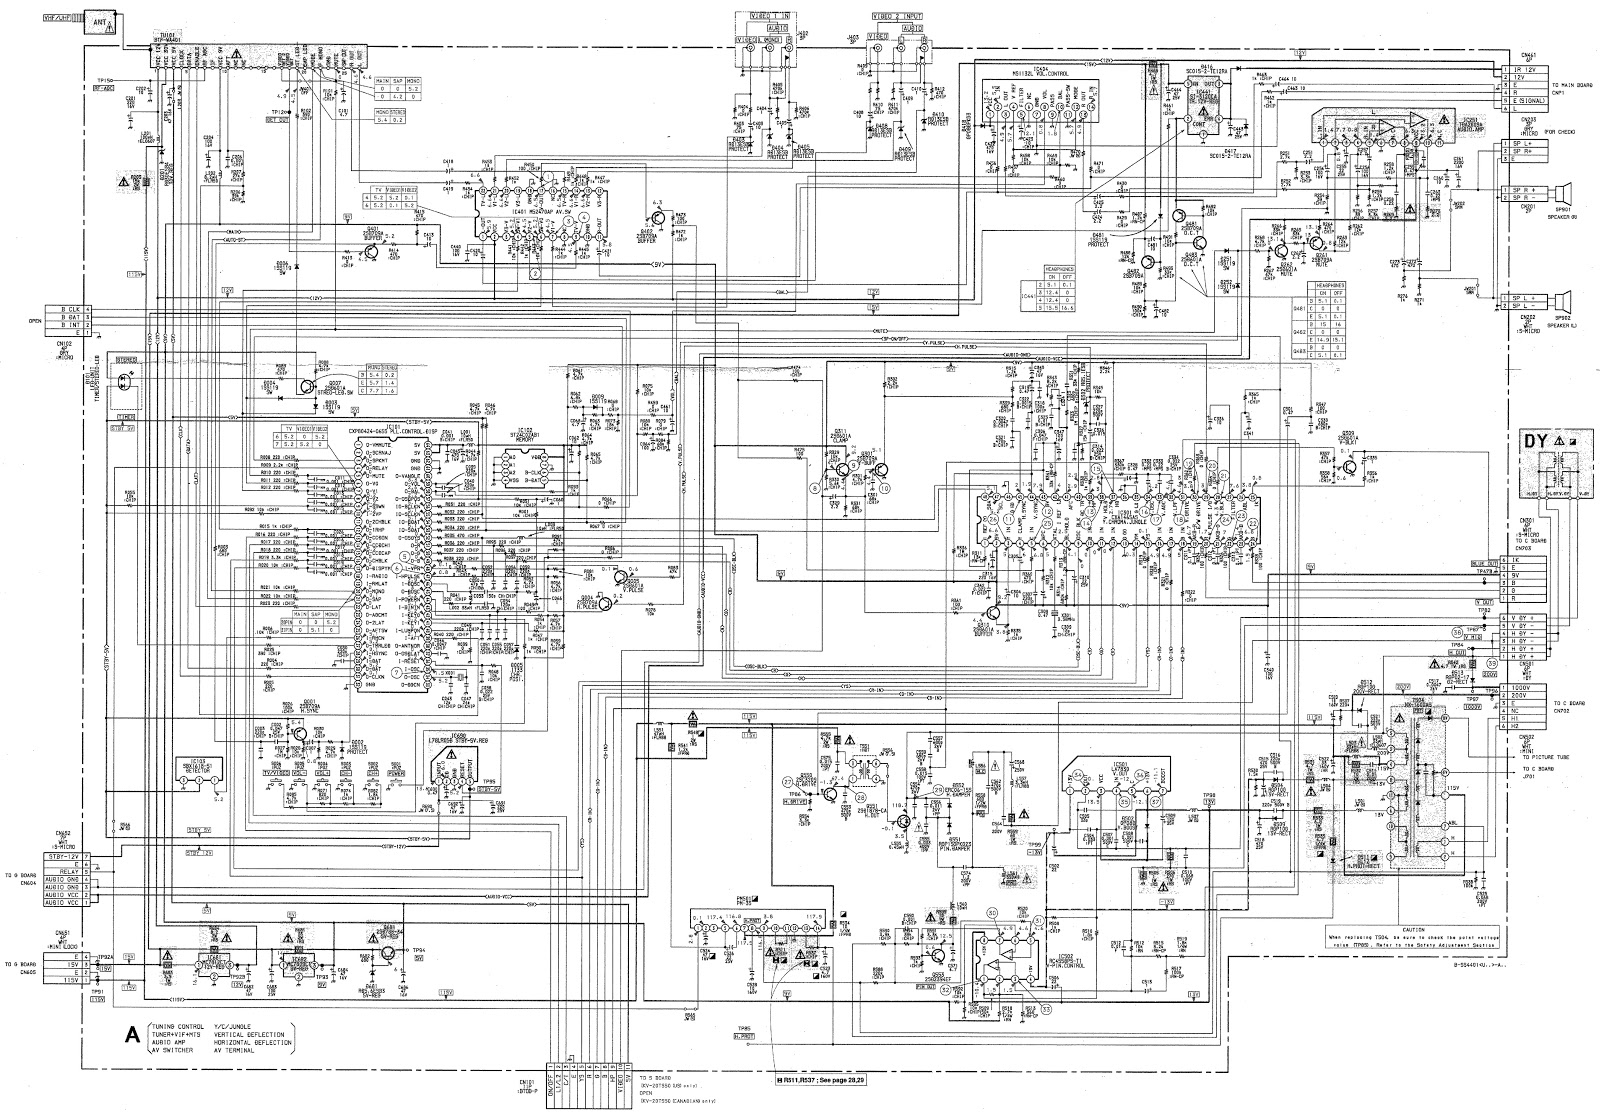 Sony Led Tv Circuit Diagram : 27 Wiring Diagram Images